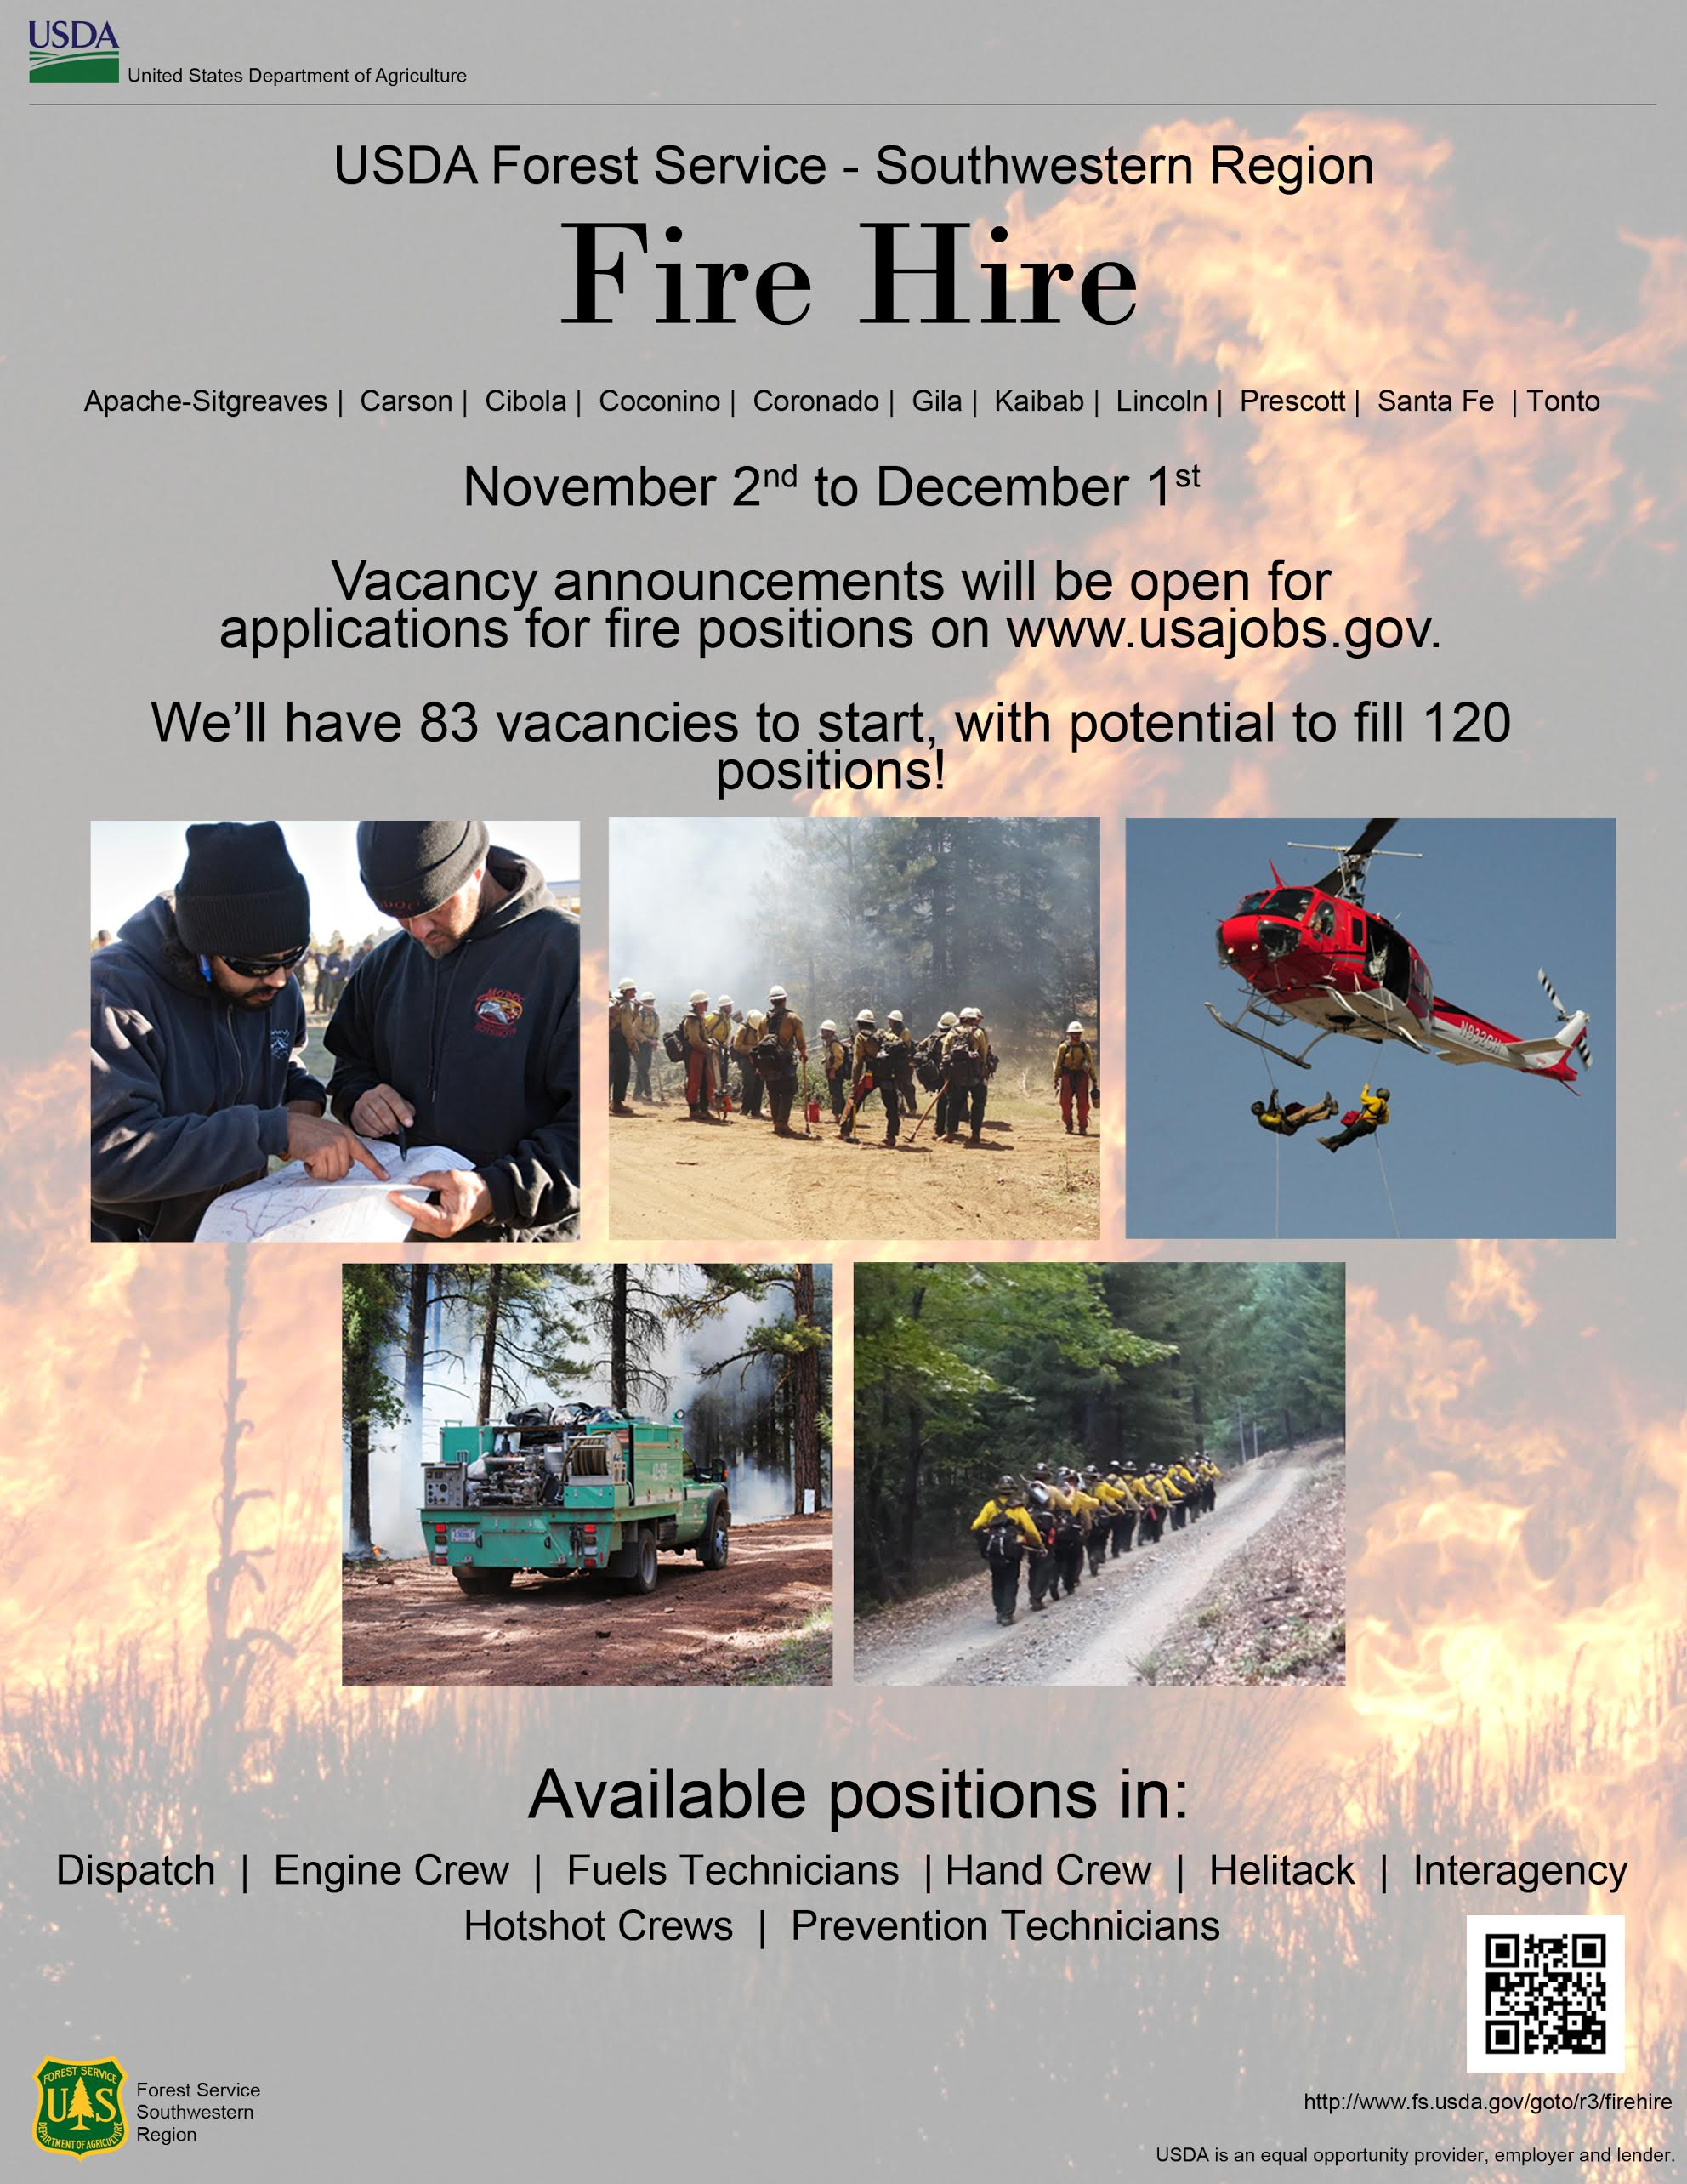 fire departments recruit for open jobs st george news fire hire flyer image courtesy of kaibab national forest st george news